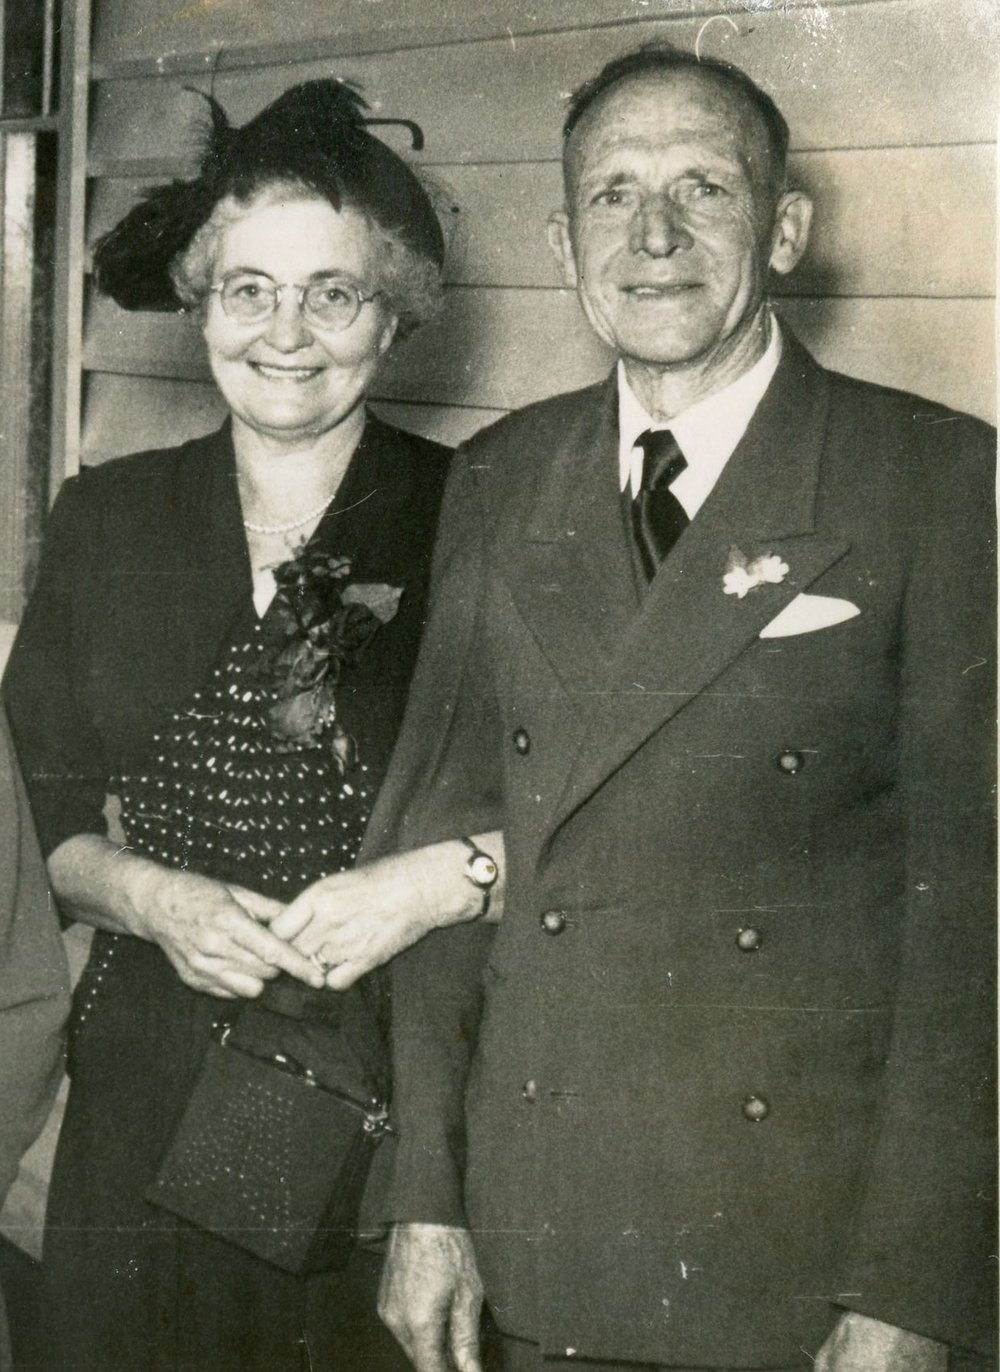 L-R: May and Reg Walters, early 1950s